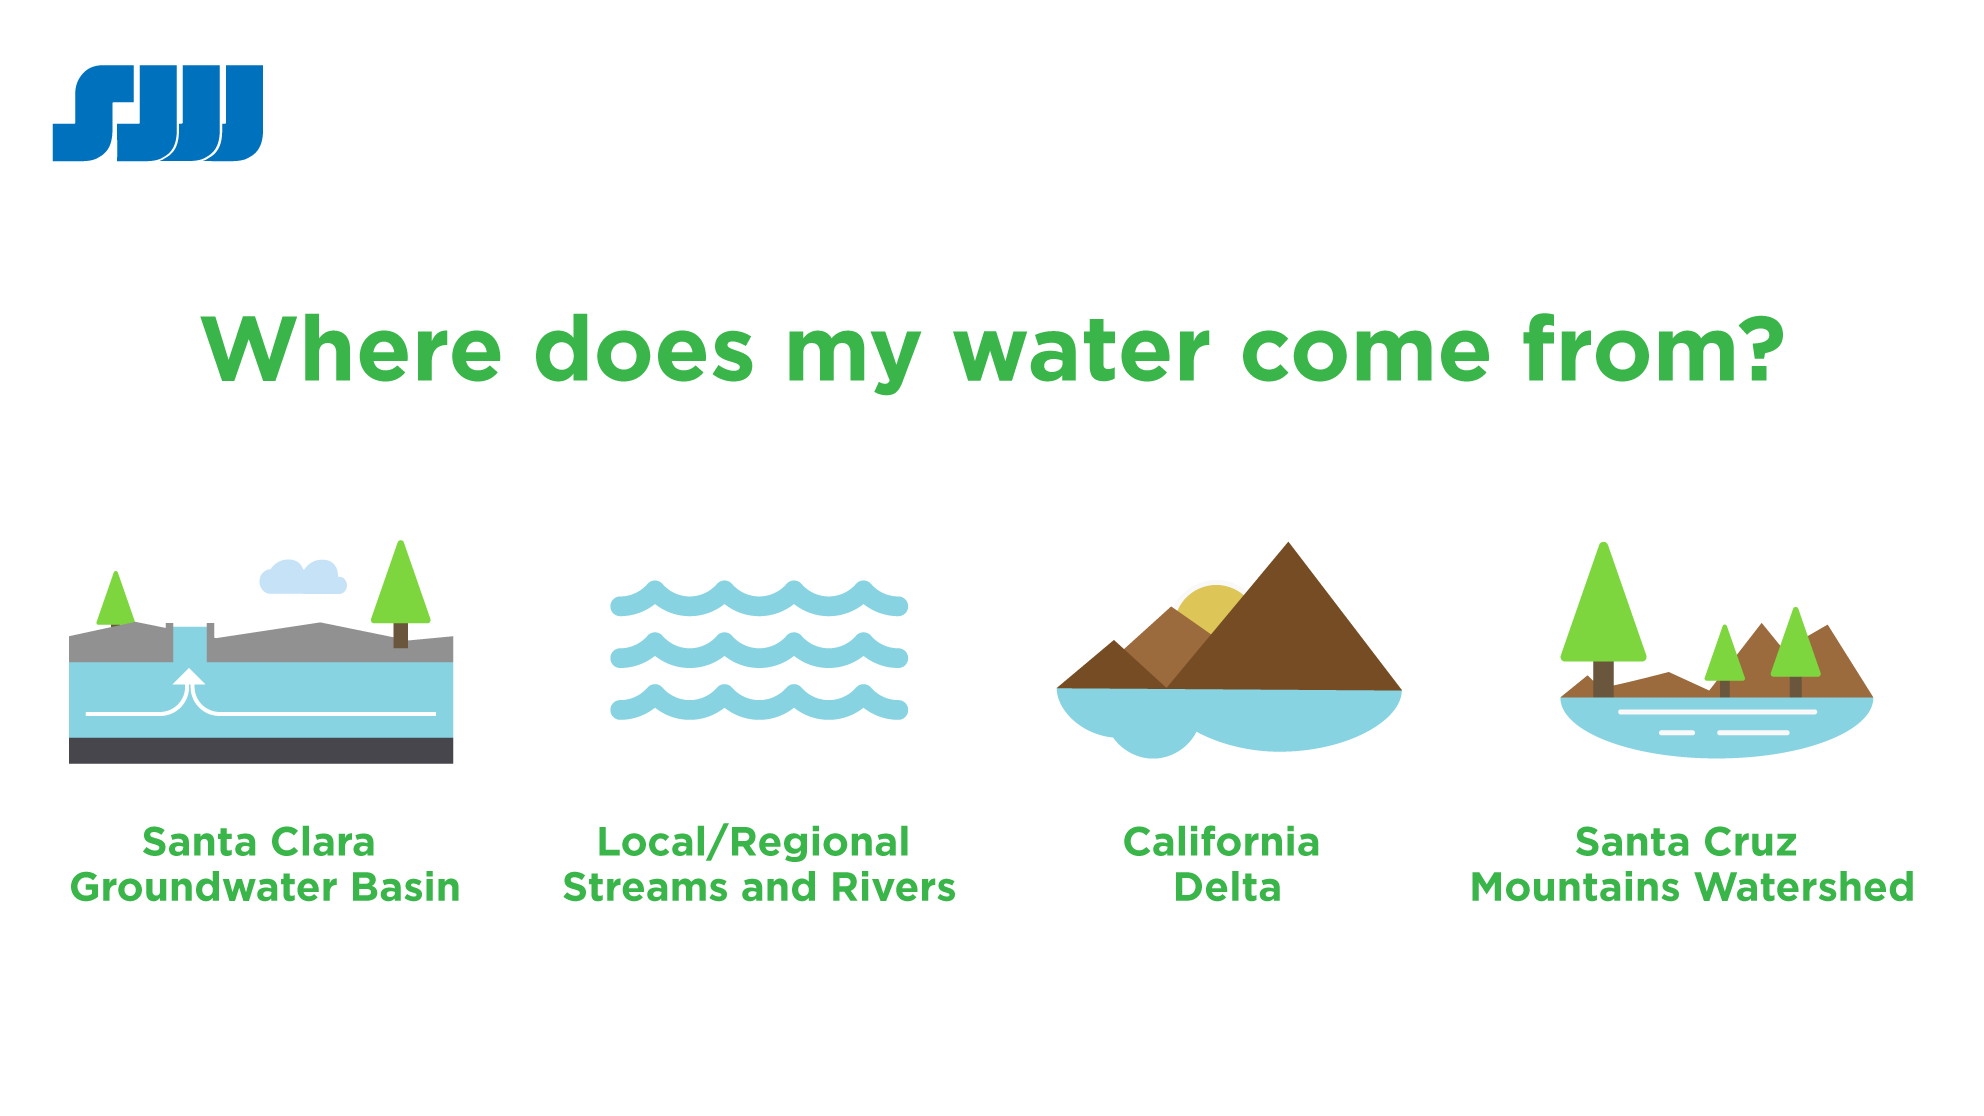 Where does my water come from graphic